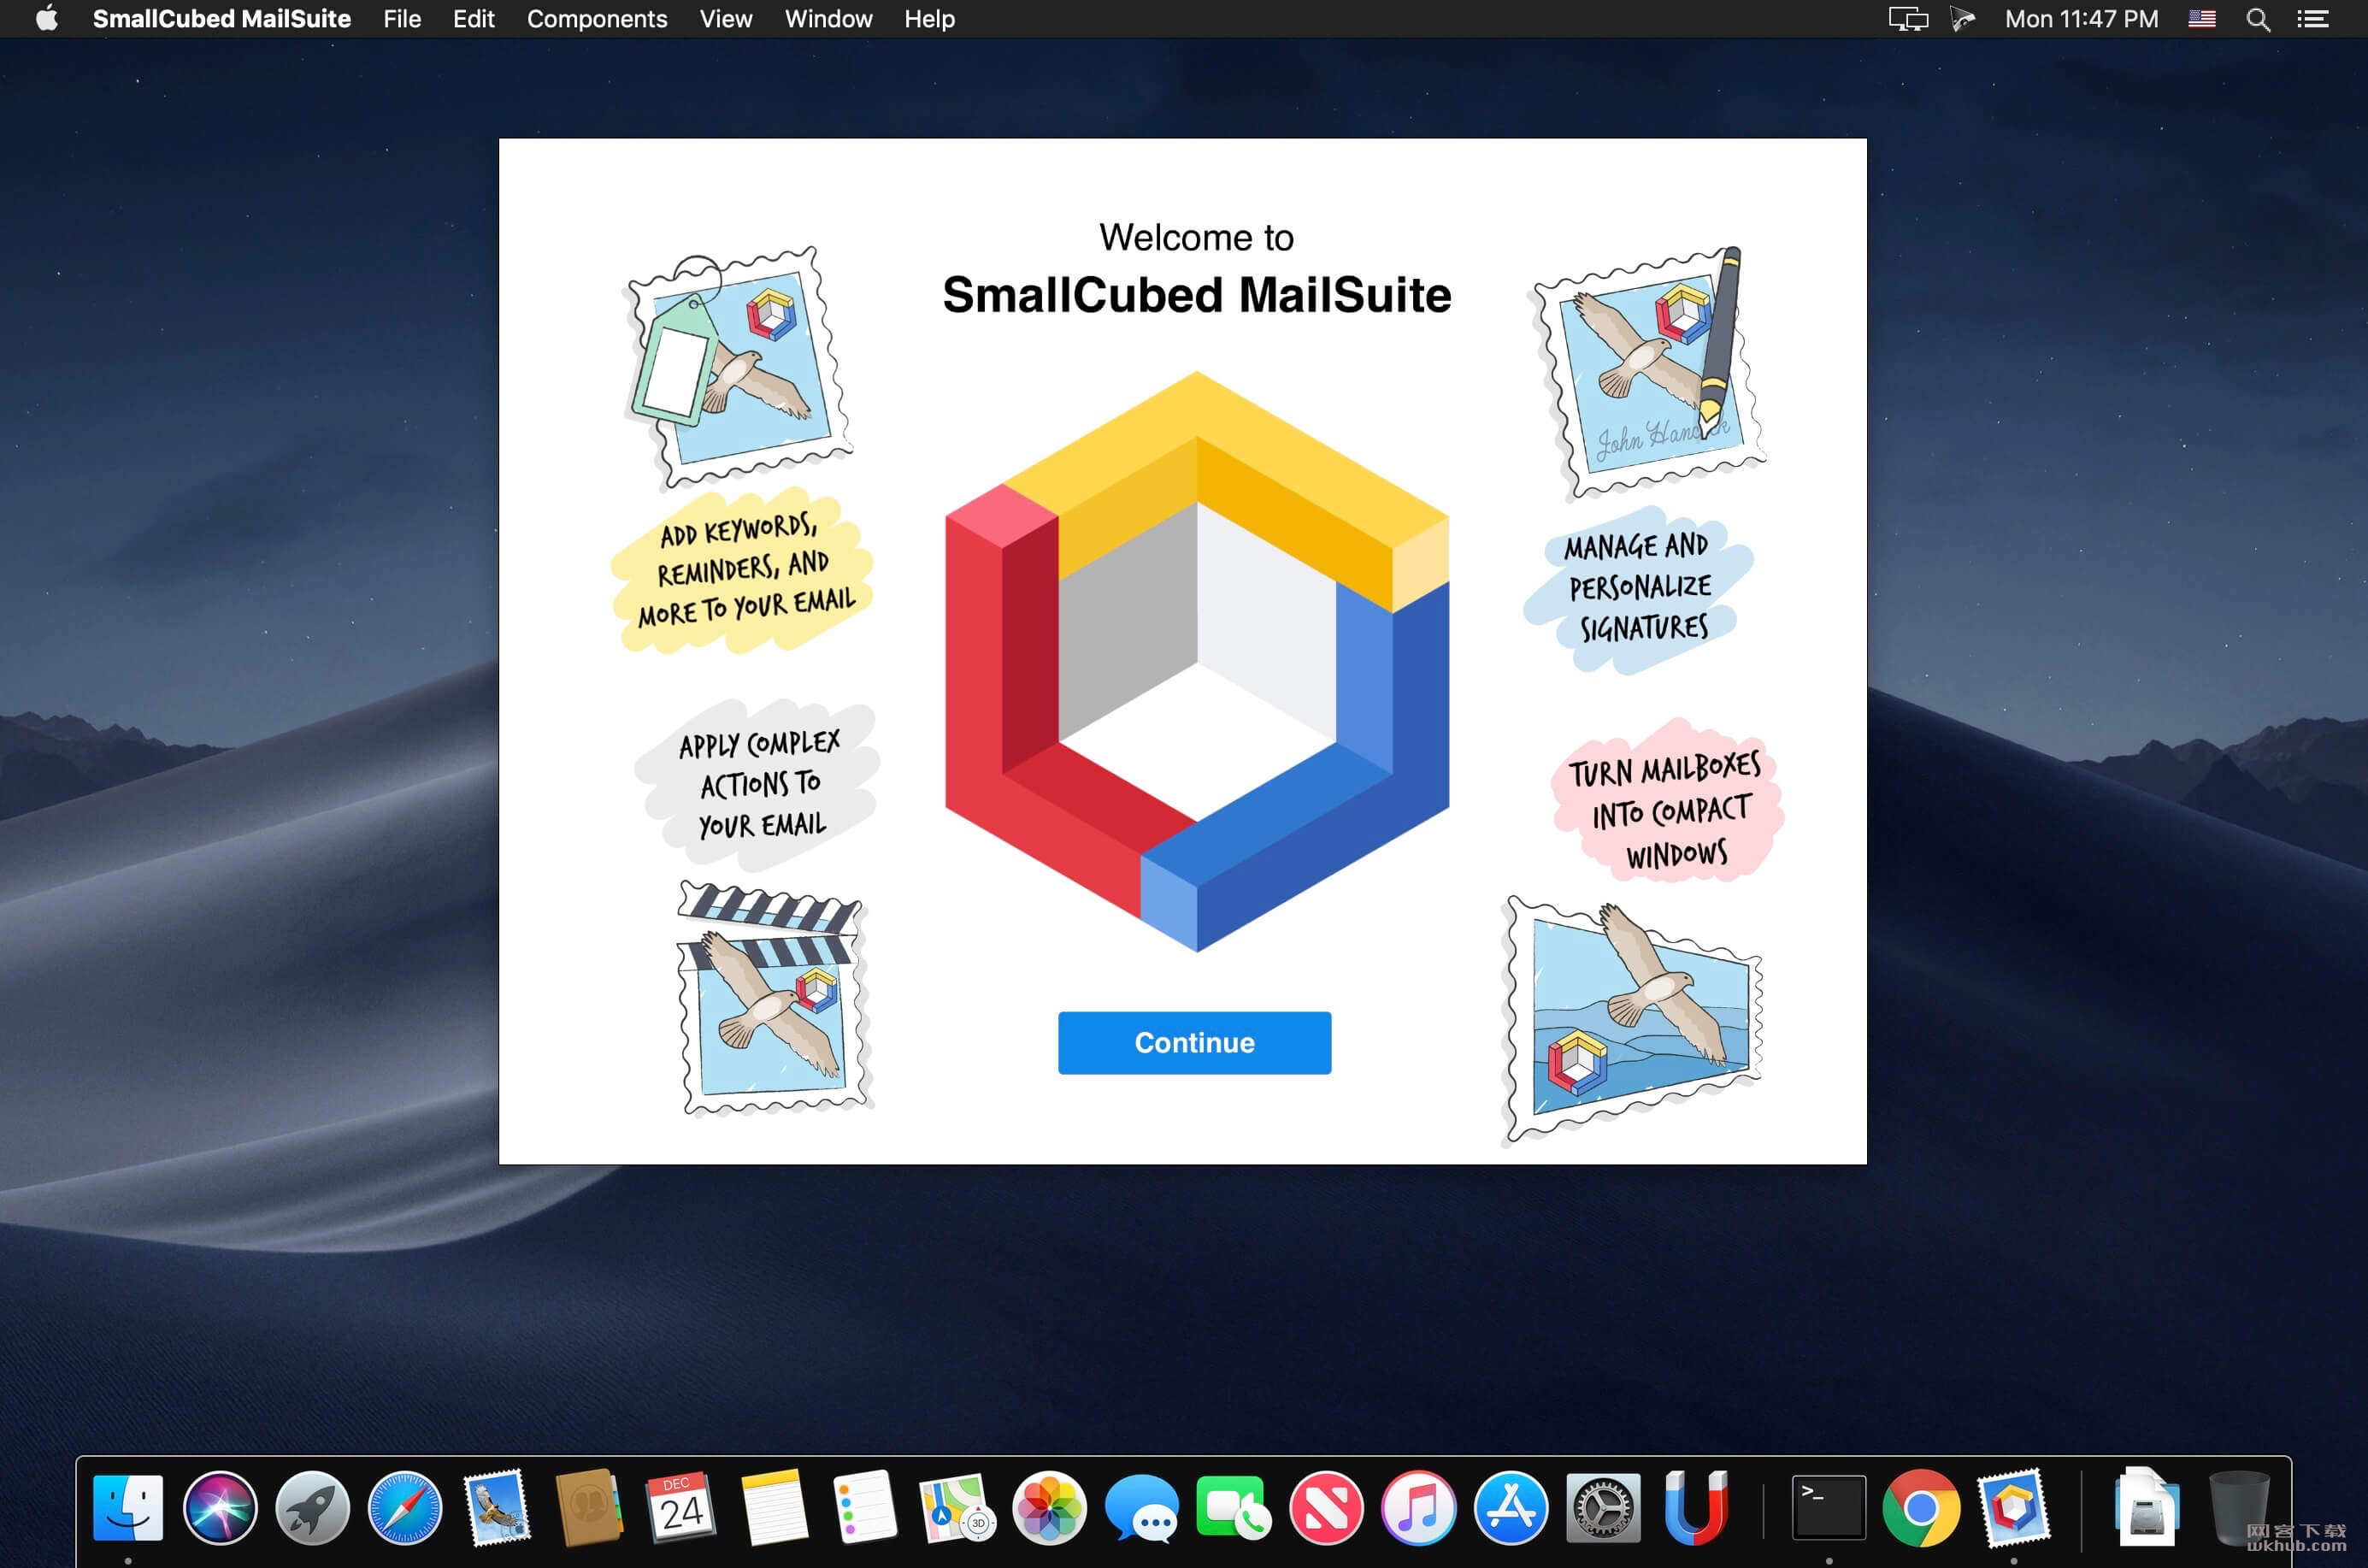 SmallCubed MailSuite 2019.0.1 自带Mail应用扩展程序